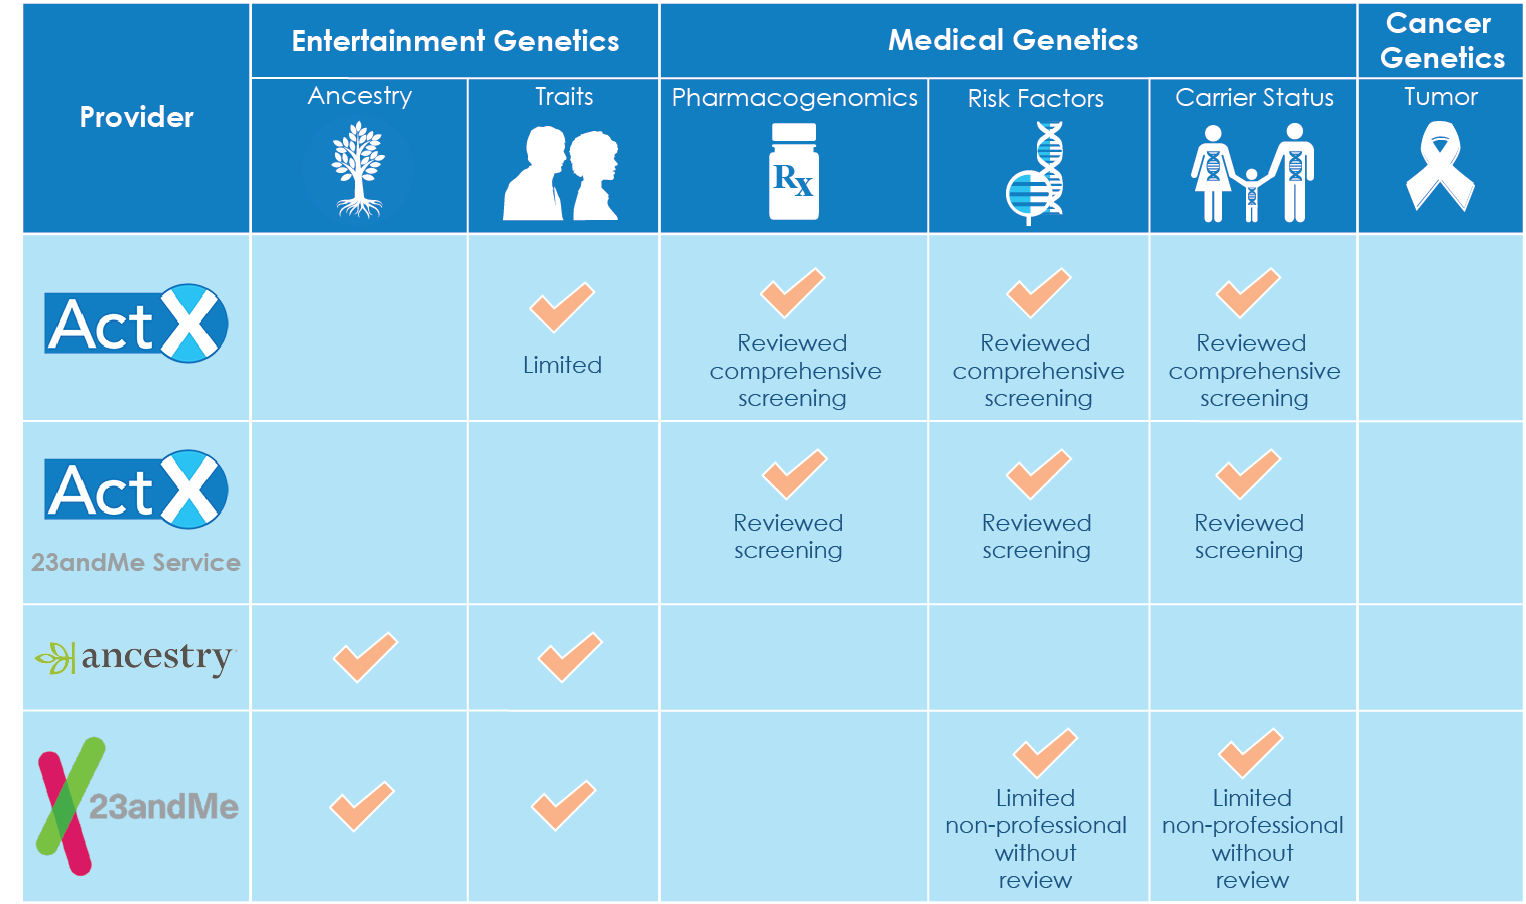 Categories of genetic testing